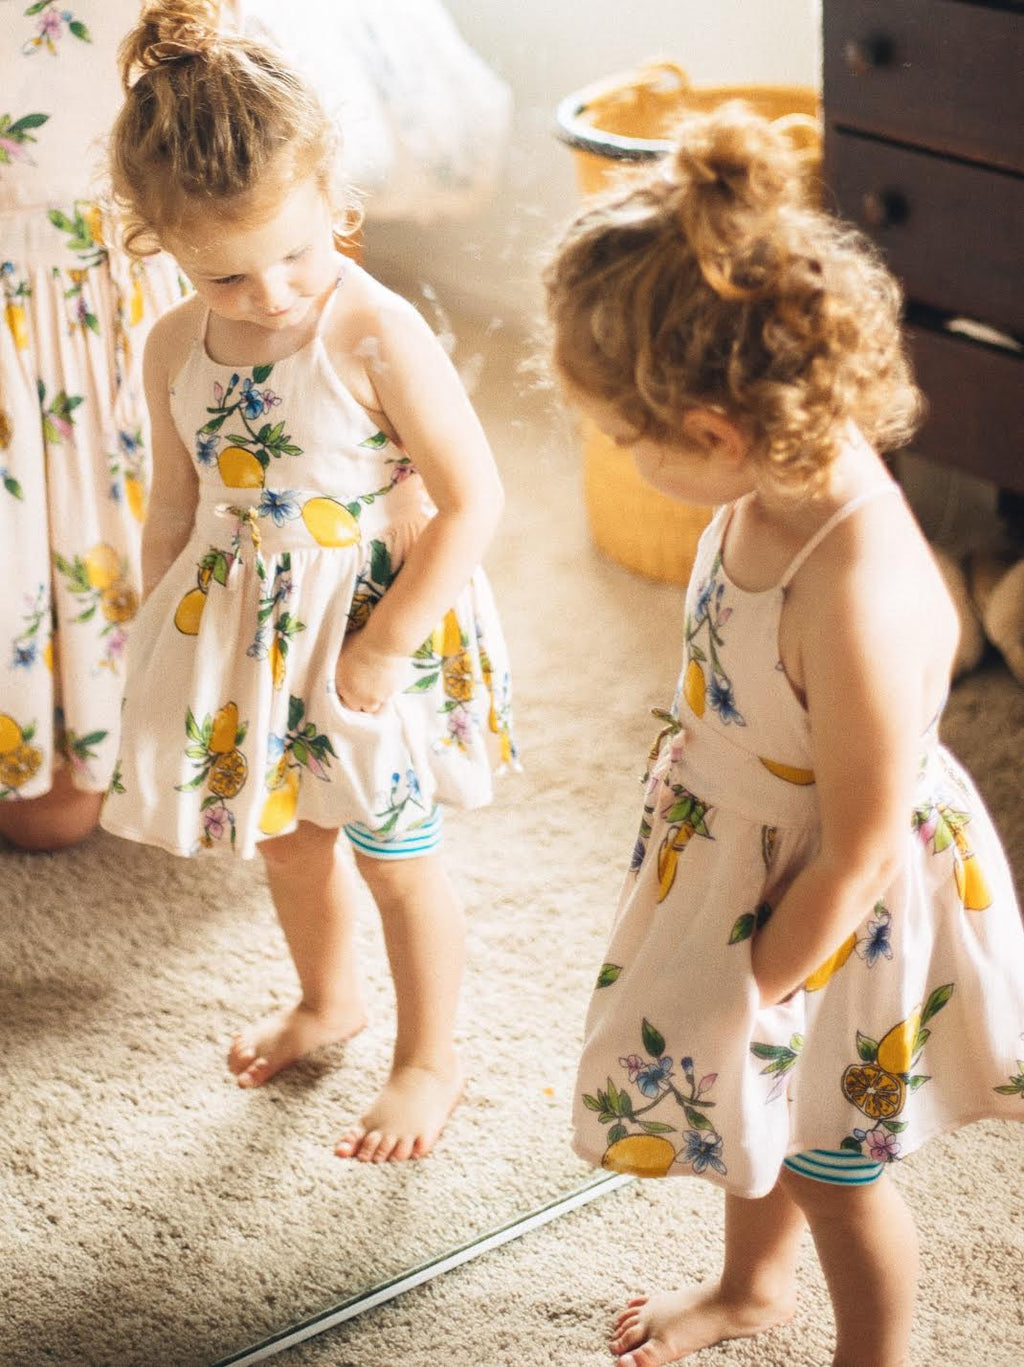 Baby Dandelion Dress - Pink Lemonade